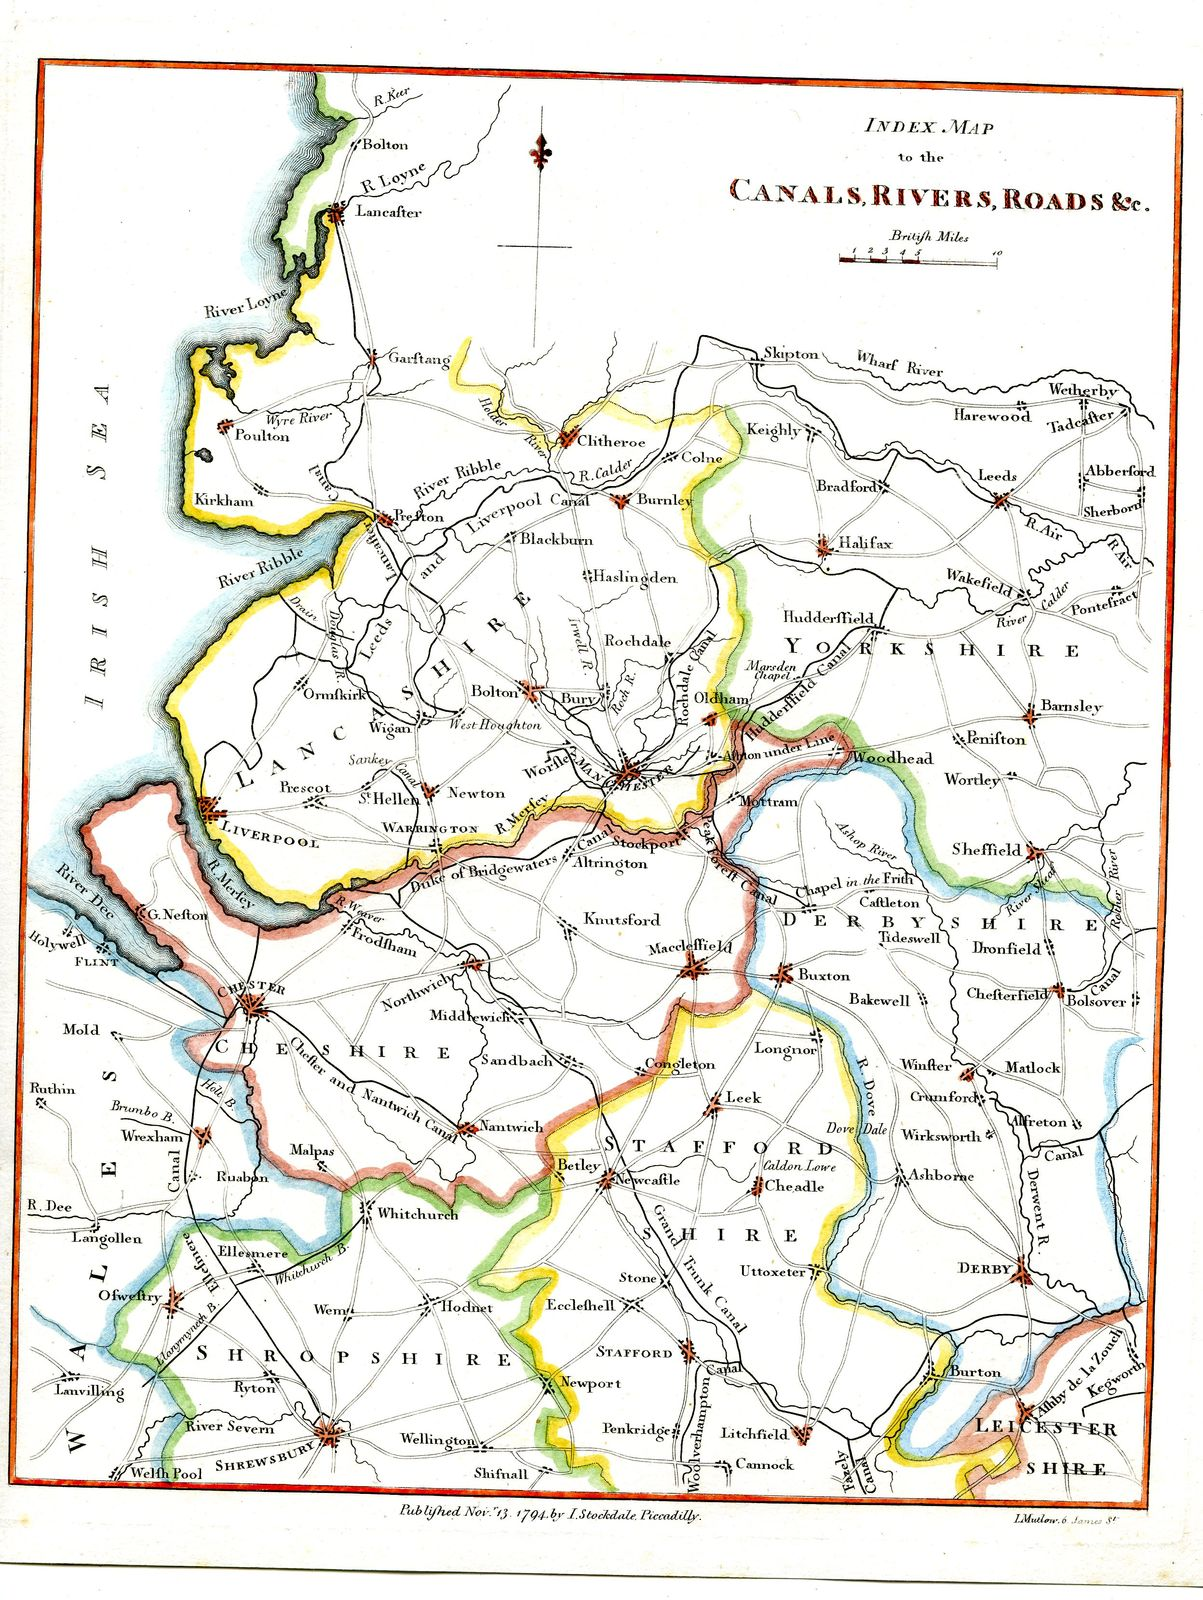 Map Of Uk Rivers And Canals.Jonathan Potter Map Index Map To The Canals Rivers Roads C